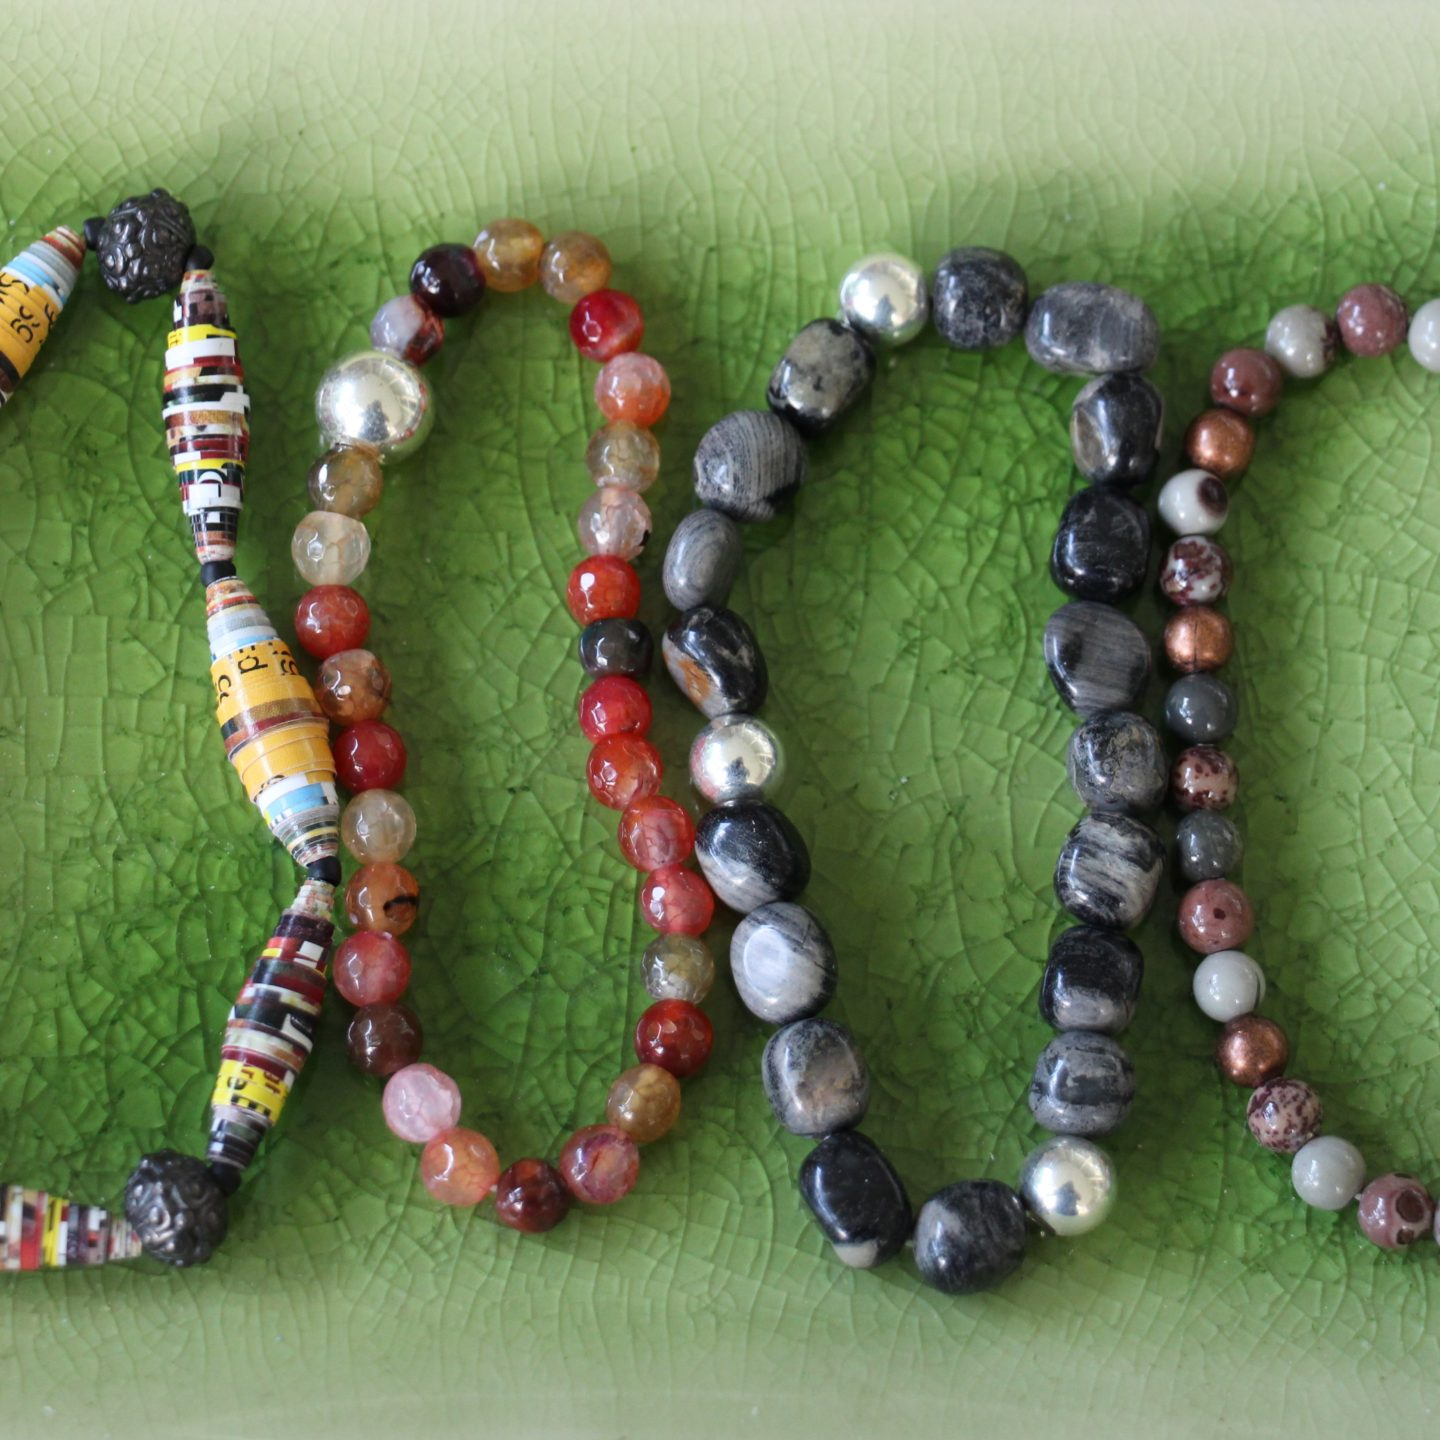 Stretchy bracelets and other fun stuff! Calm the creative mind with a little exploring!